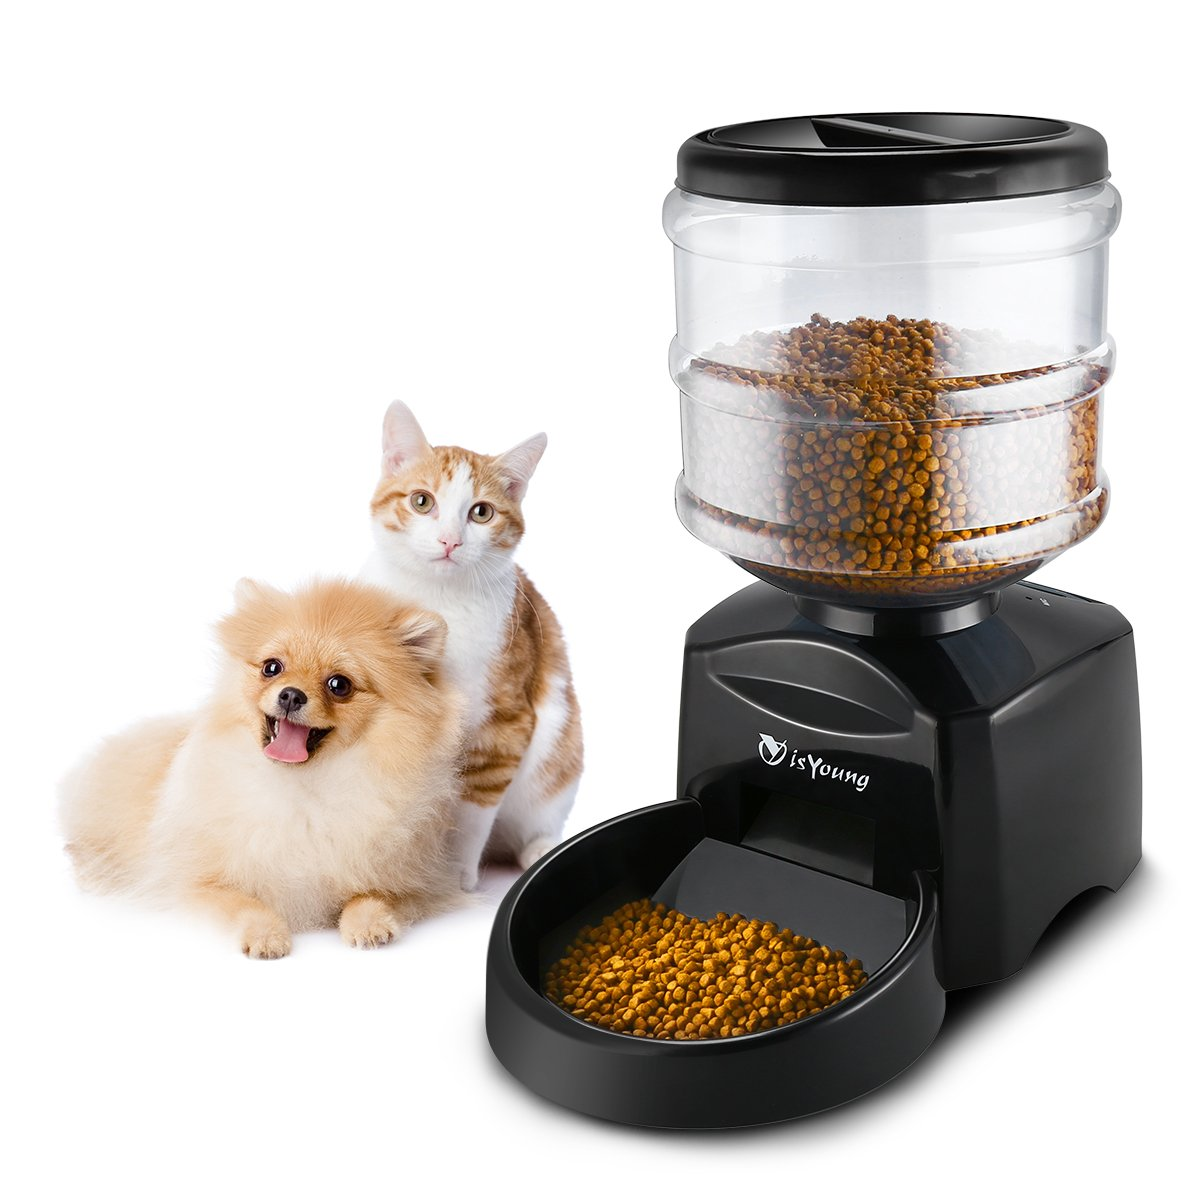 Cat Supplies Cat Mate Automatic 2 Meal Timed Pet Feeder Food Dispenser Bowl Cats Dogs New Wide Varieties Pet Supplies